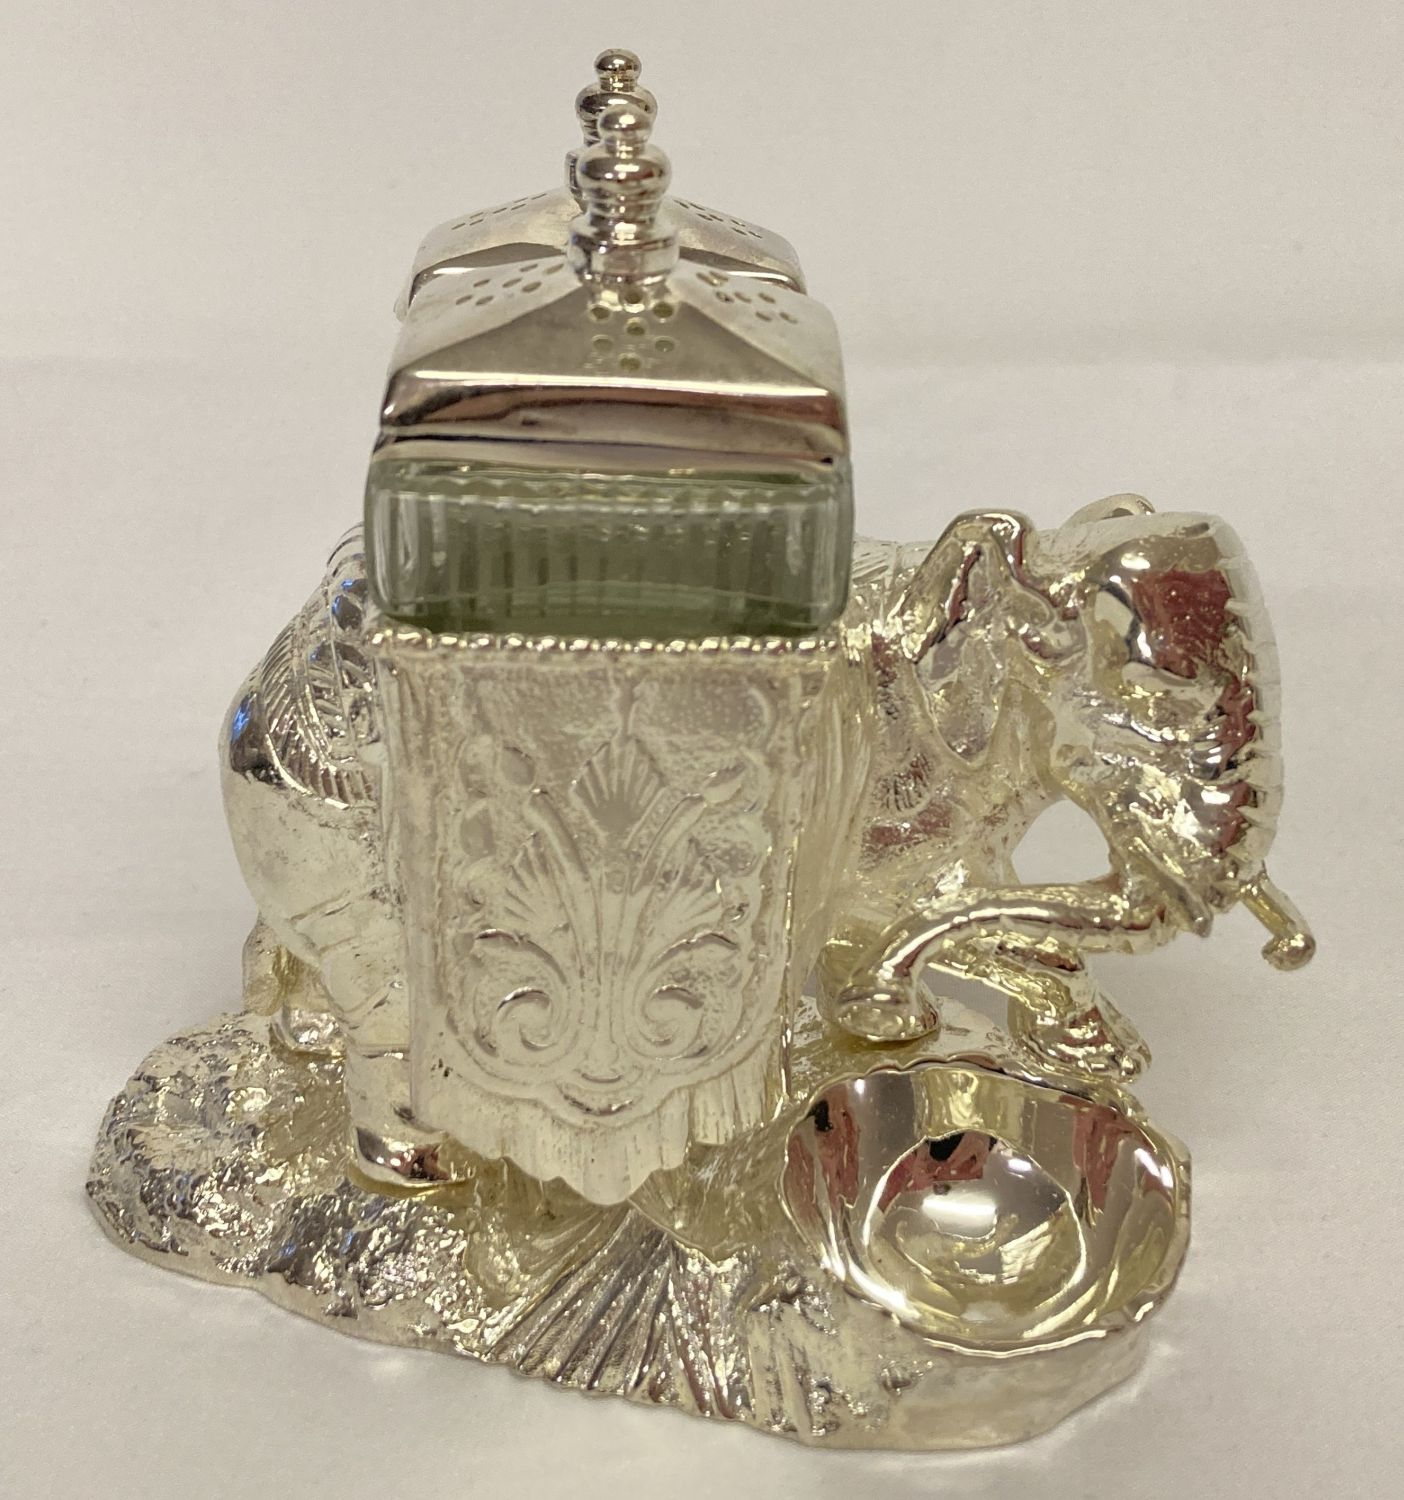 A modern silver plated cruet in the shape of an elephant, with cut glass bottles & engraved detail.